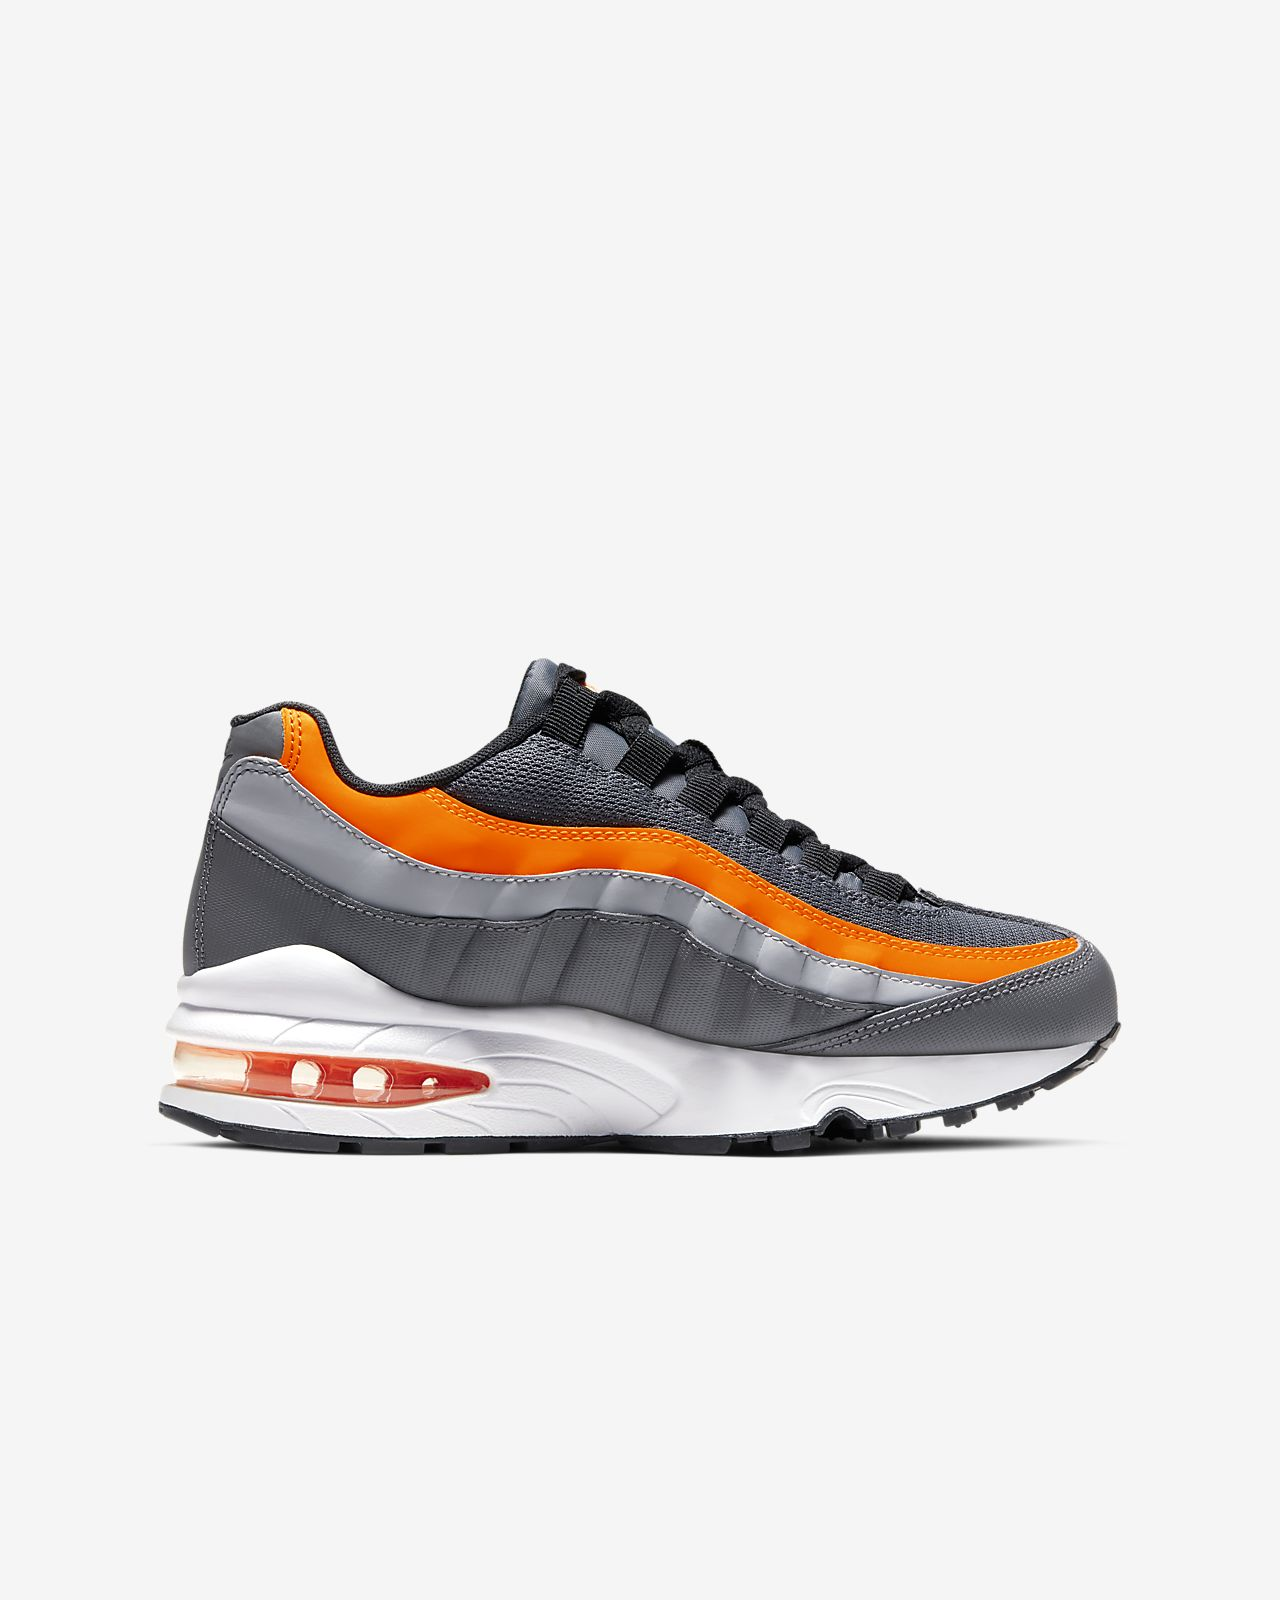 New Nike Air Max 95 Mens Sneakers Retro Shoes Classic M